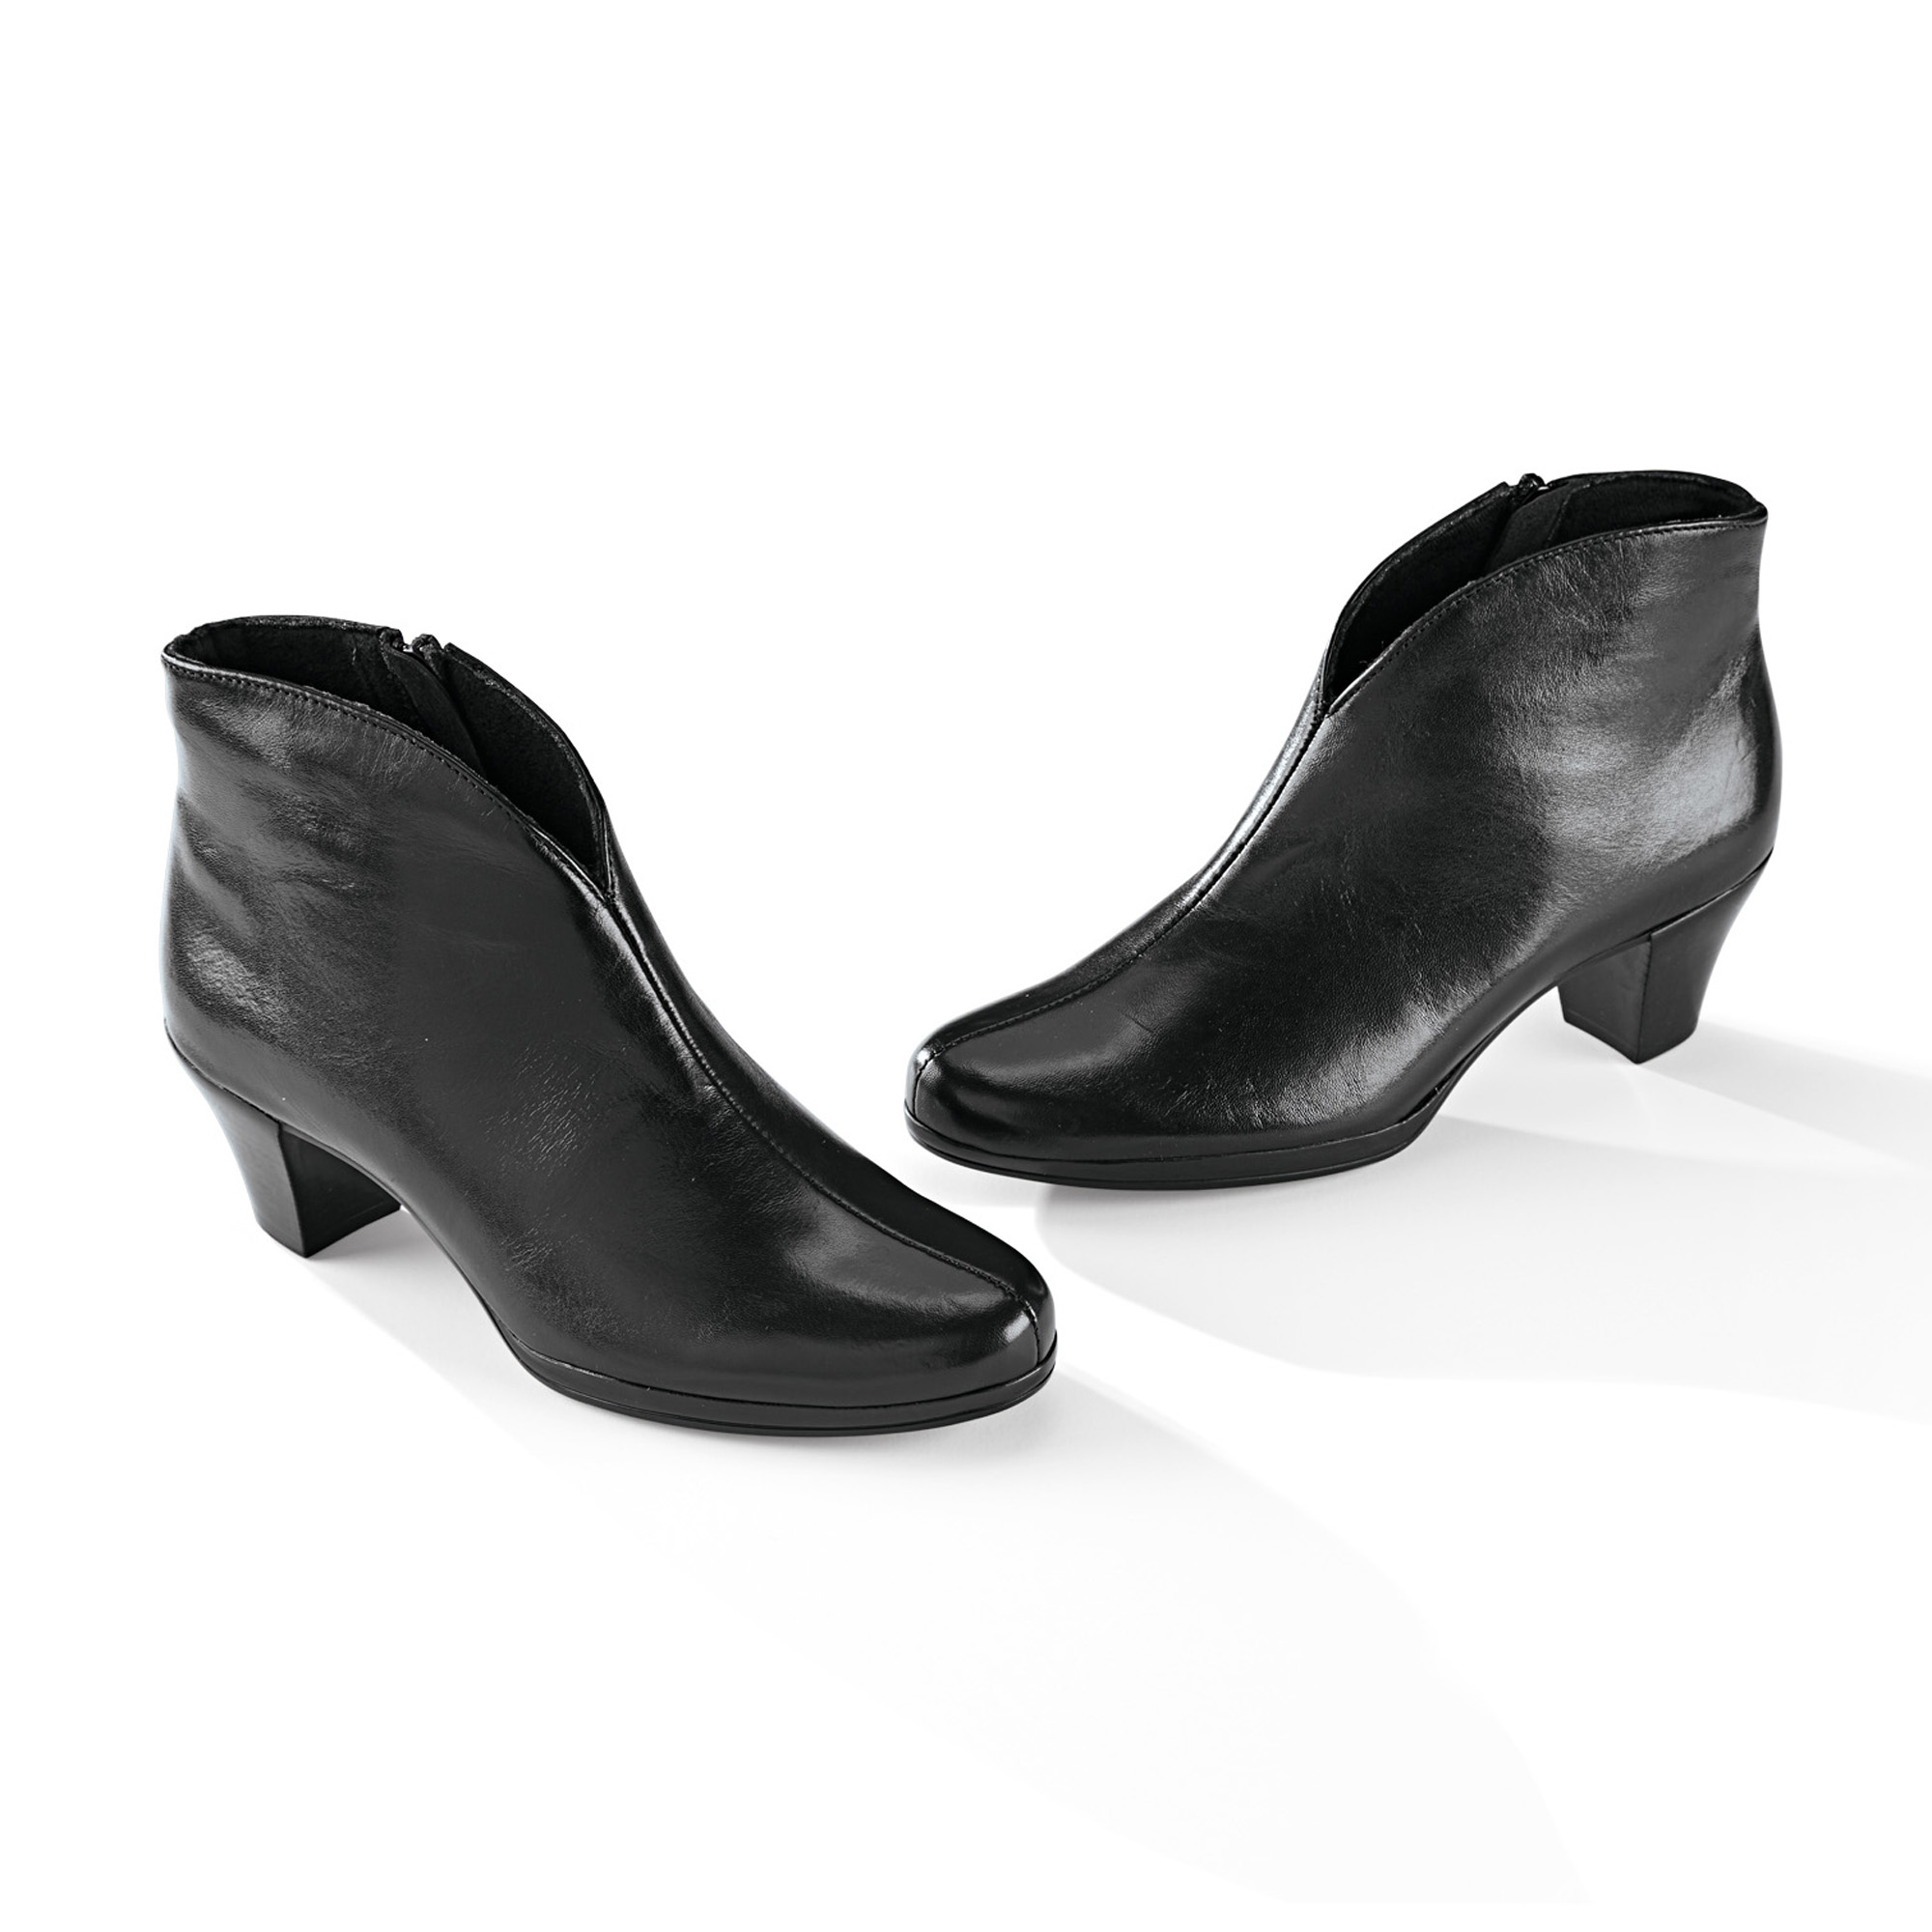 Munro Robyn Booties